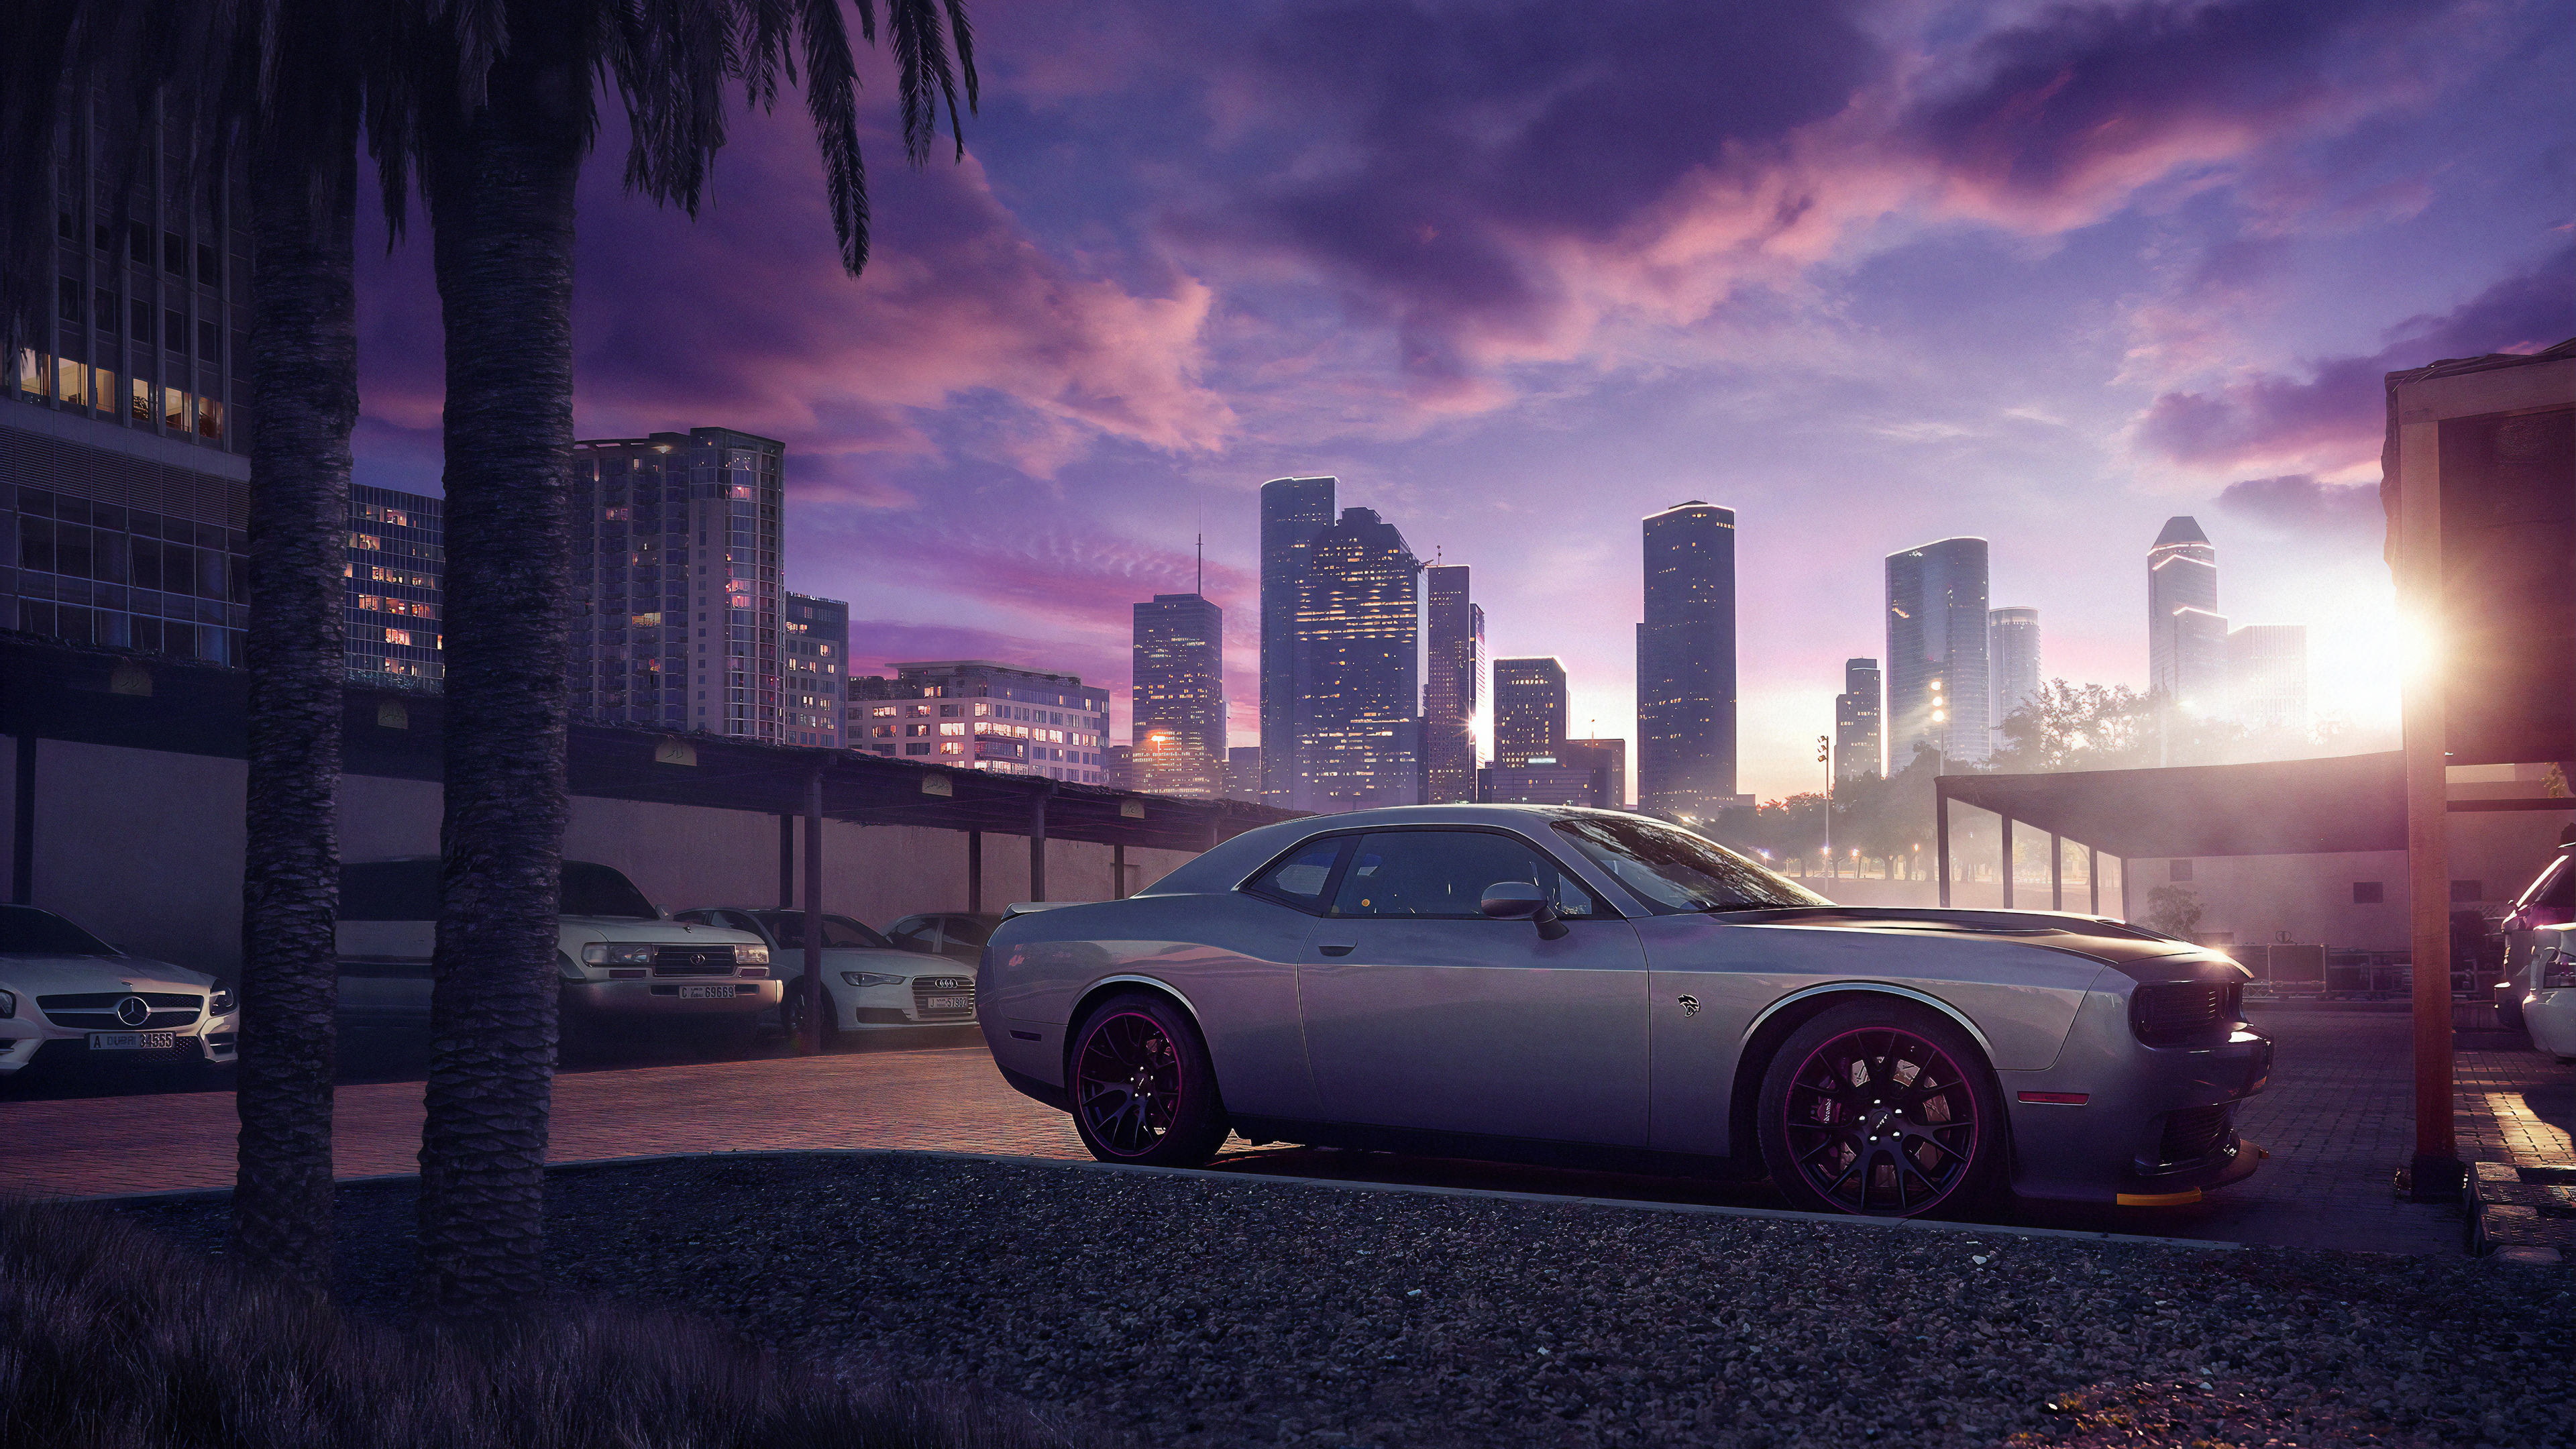 dodge challenger srt in usa 1565054844 - Dodge Challenger SRT In Usa - hd-wallpapers, dodge challenger wallpapers, dodge challenger srt hellcat widebody wallpapers, behance wallpapers, 4k-wallpapers, 2019 cars wallpapers